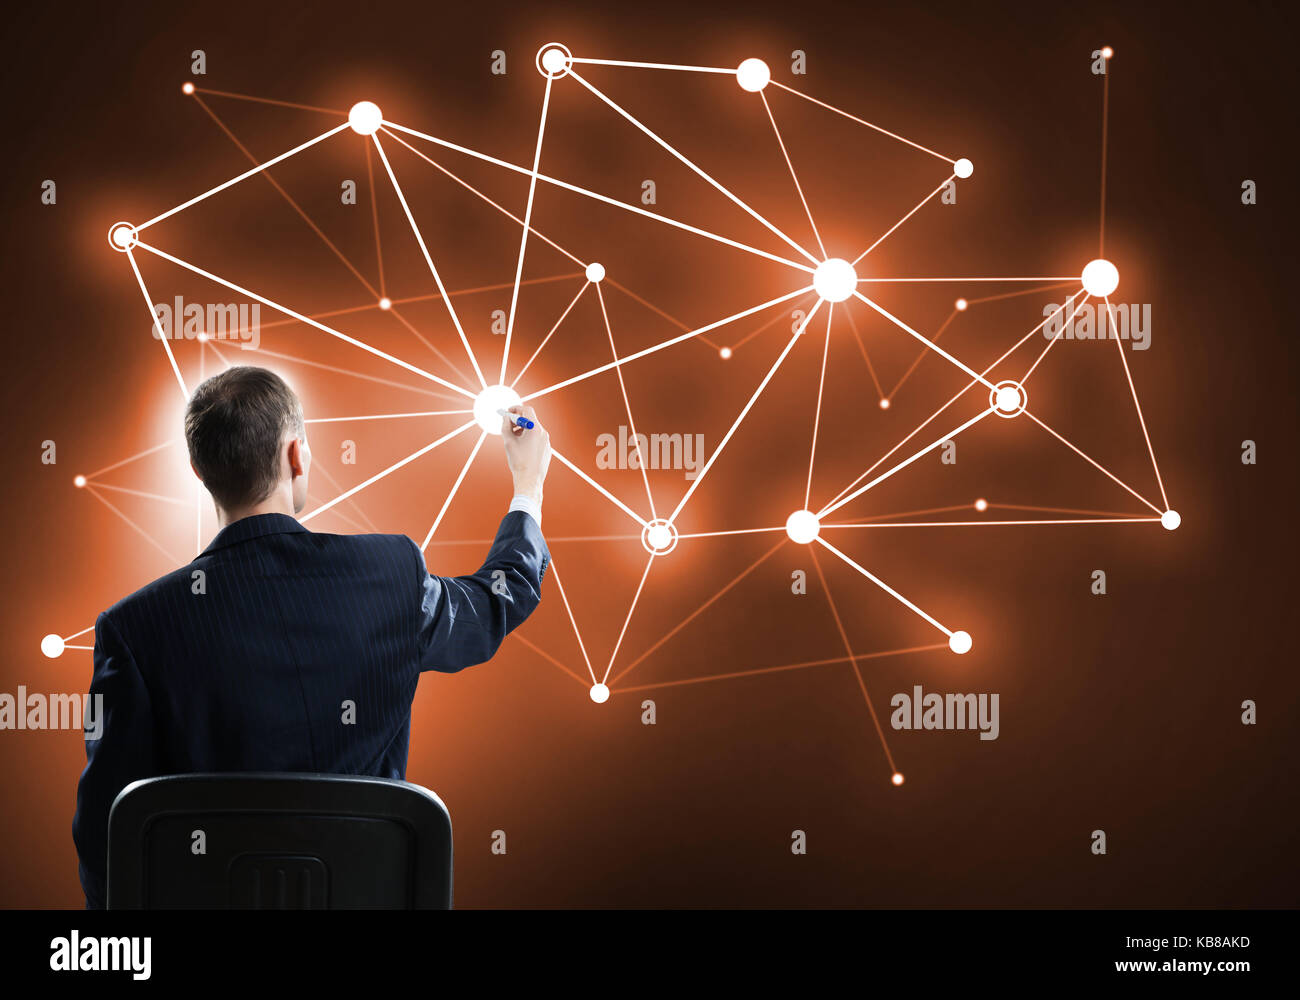 Concept of connection and interaction - Stock Image